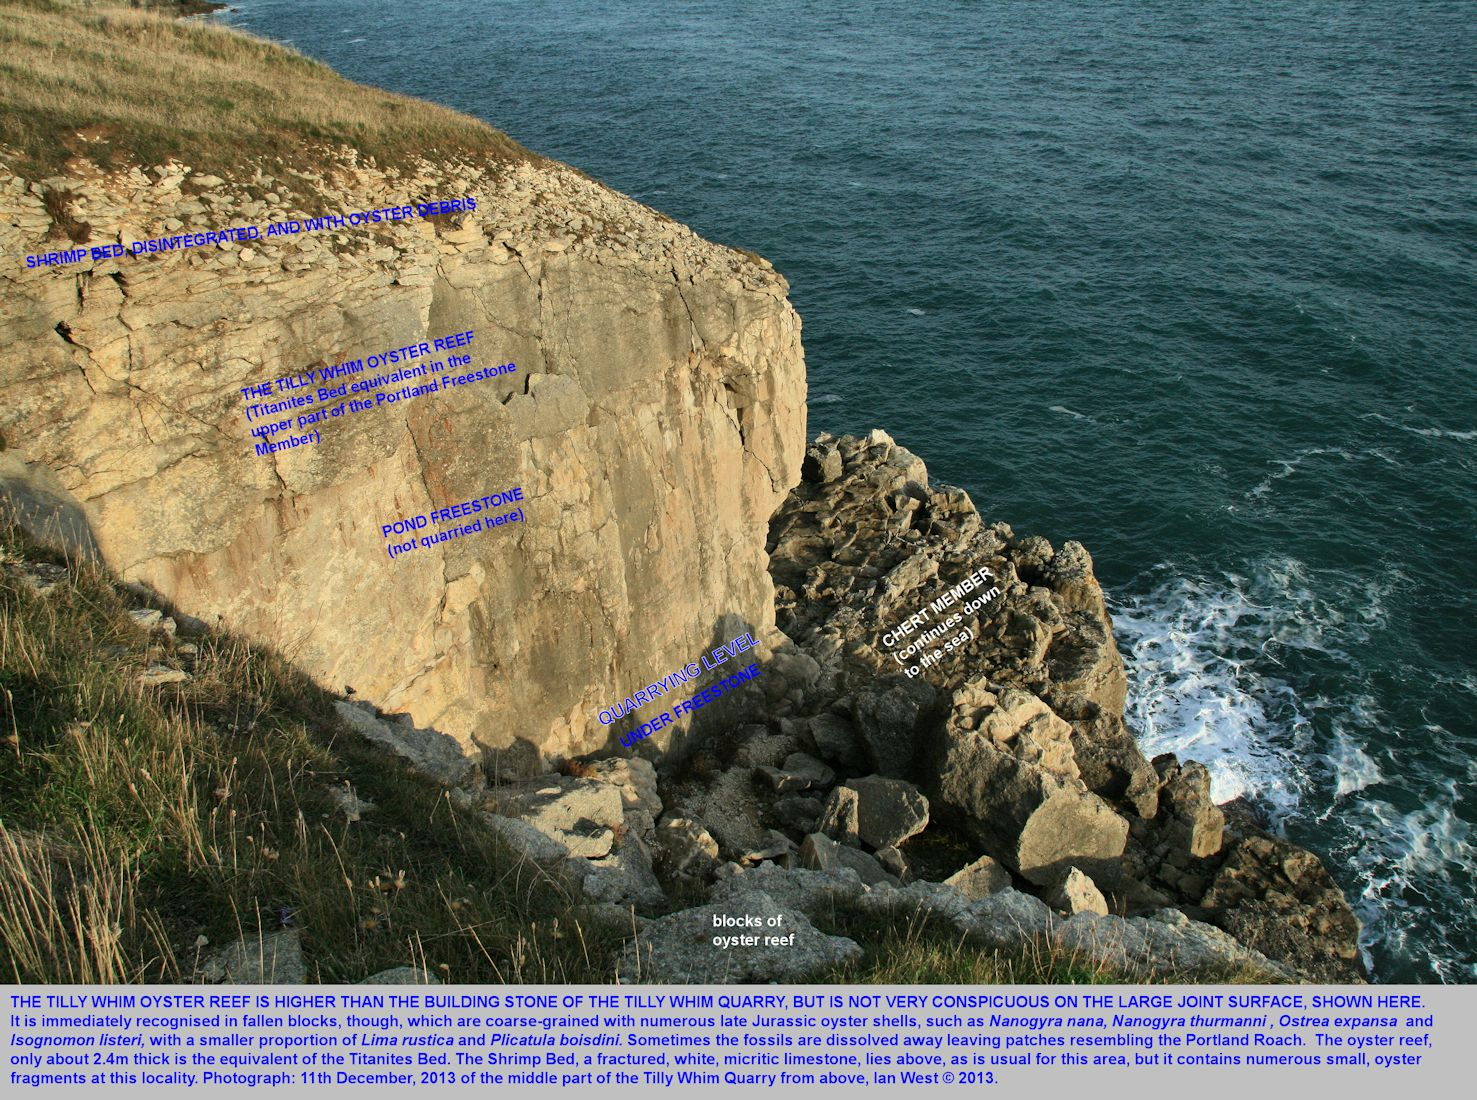 The location of the Tilly Whim Oyster Bed, in rock face of joint origin, Tilly Whim Caves, near Anvil Point, and near Durlston Head, Swanage, Dorset, 11th December 2013